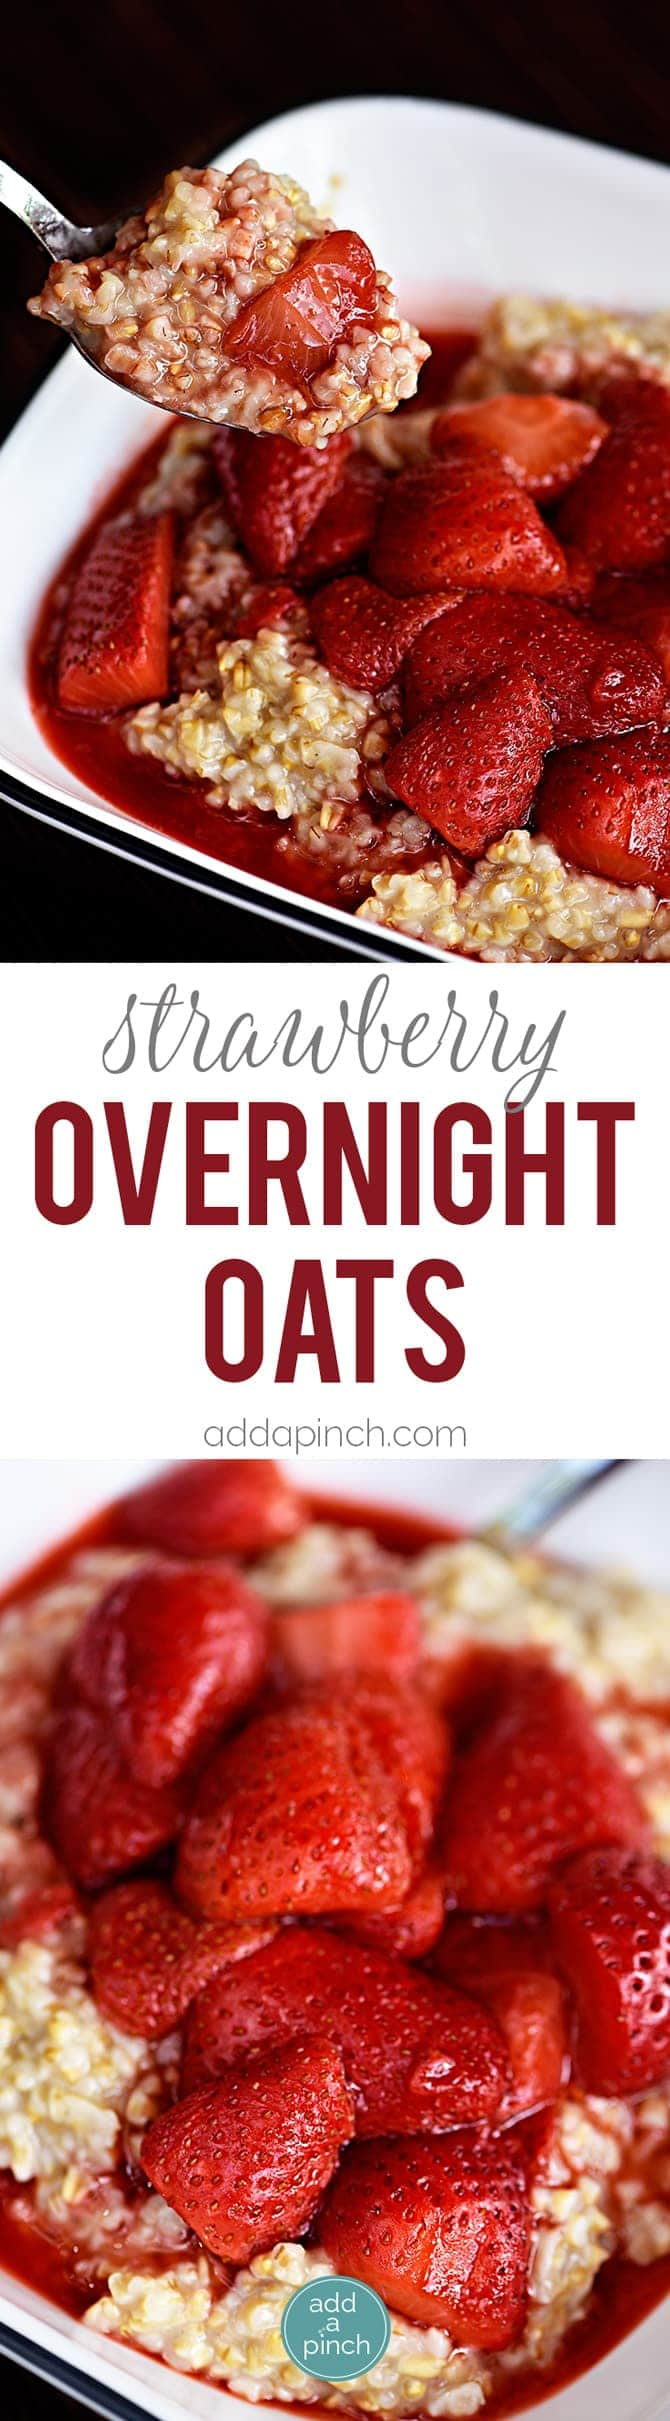 how to make one serve of oats stovetop milk